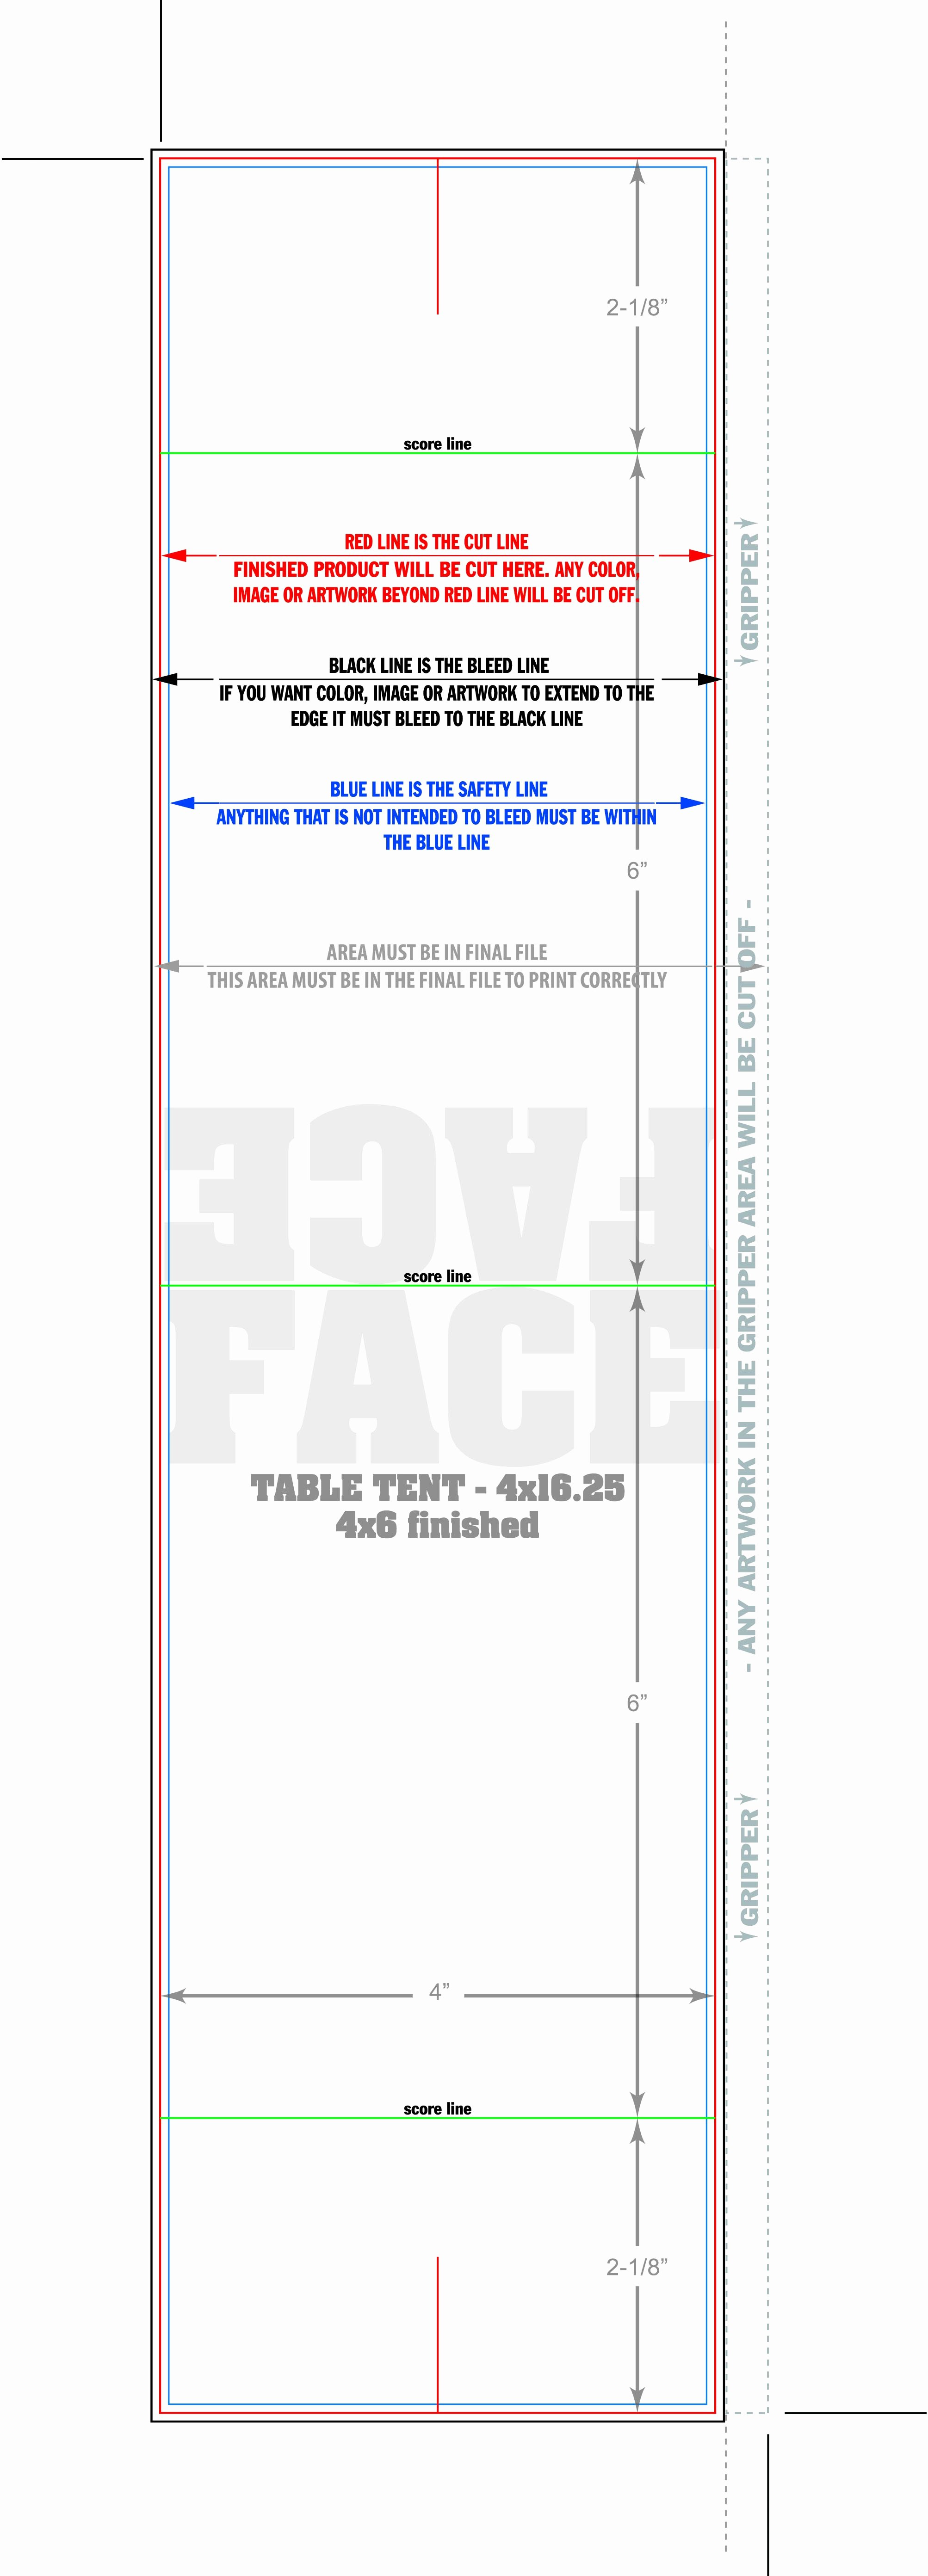 Free Table Tent Template New Table Tent Cards Templates